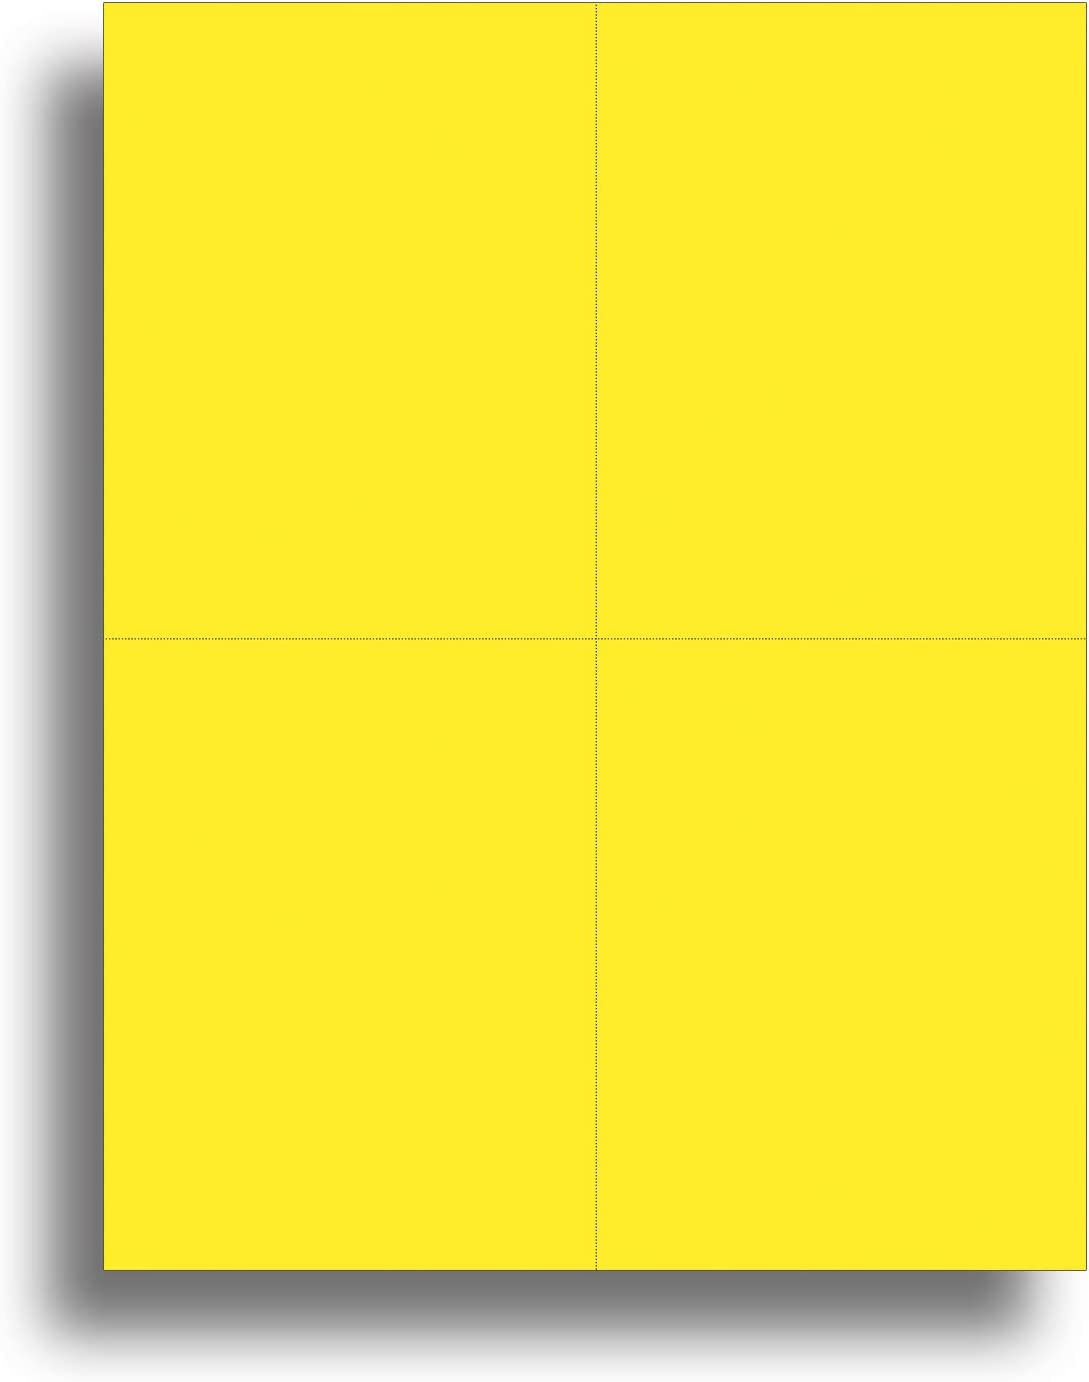 Blank Colored 4-up Postcard Paper by Desktop Publishing Supplies - 25 Sheets / 100 Postcards Pack - Printable with Laser or Inkjet Printer - USPS Approved Size - Plain Matte Cardstock (Bright Yellow)